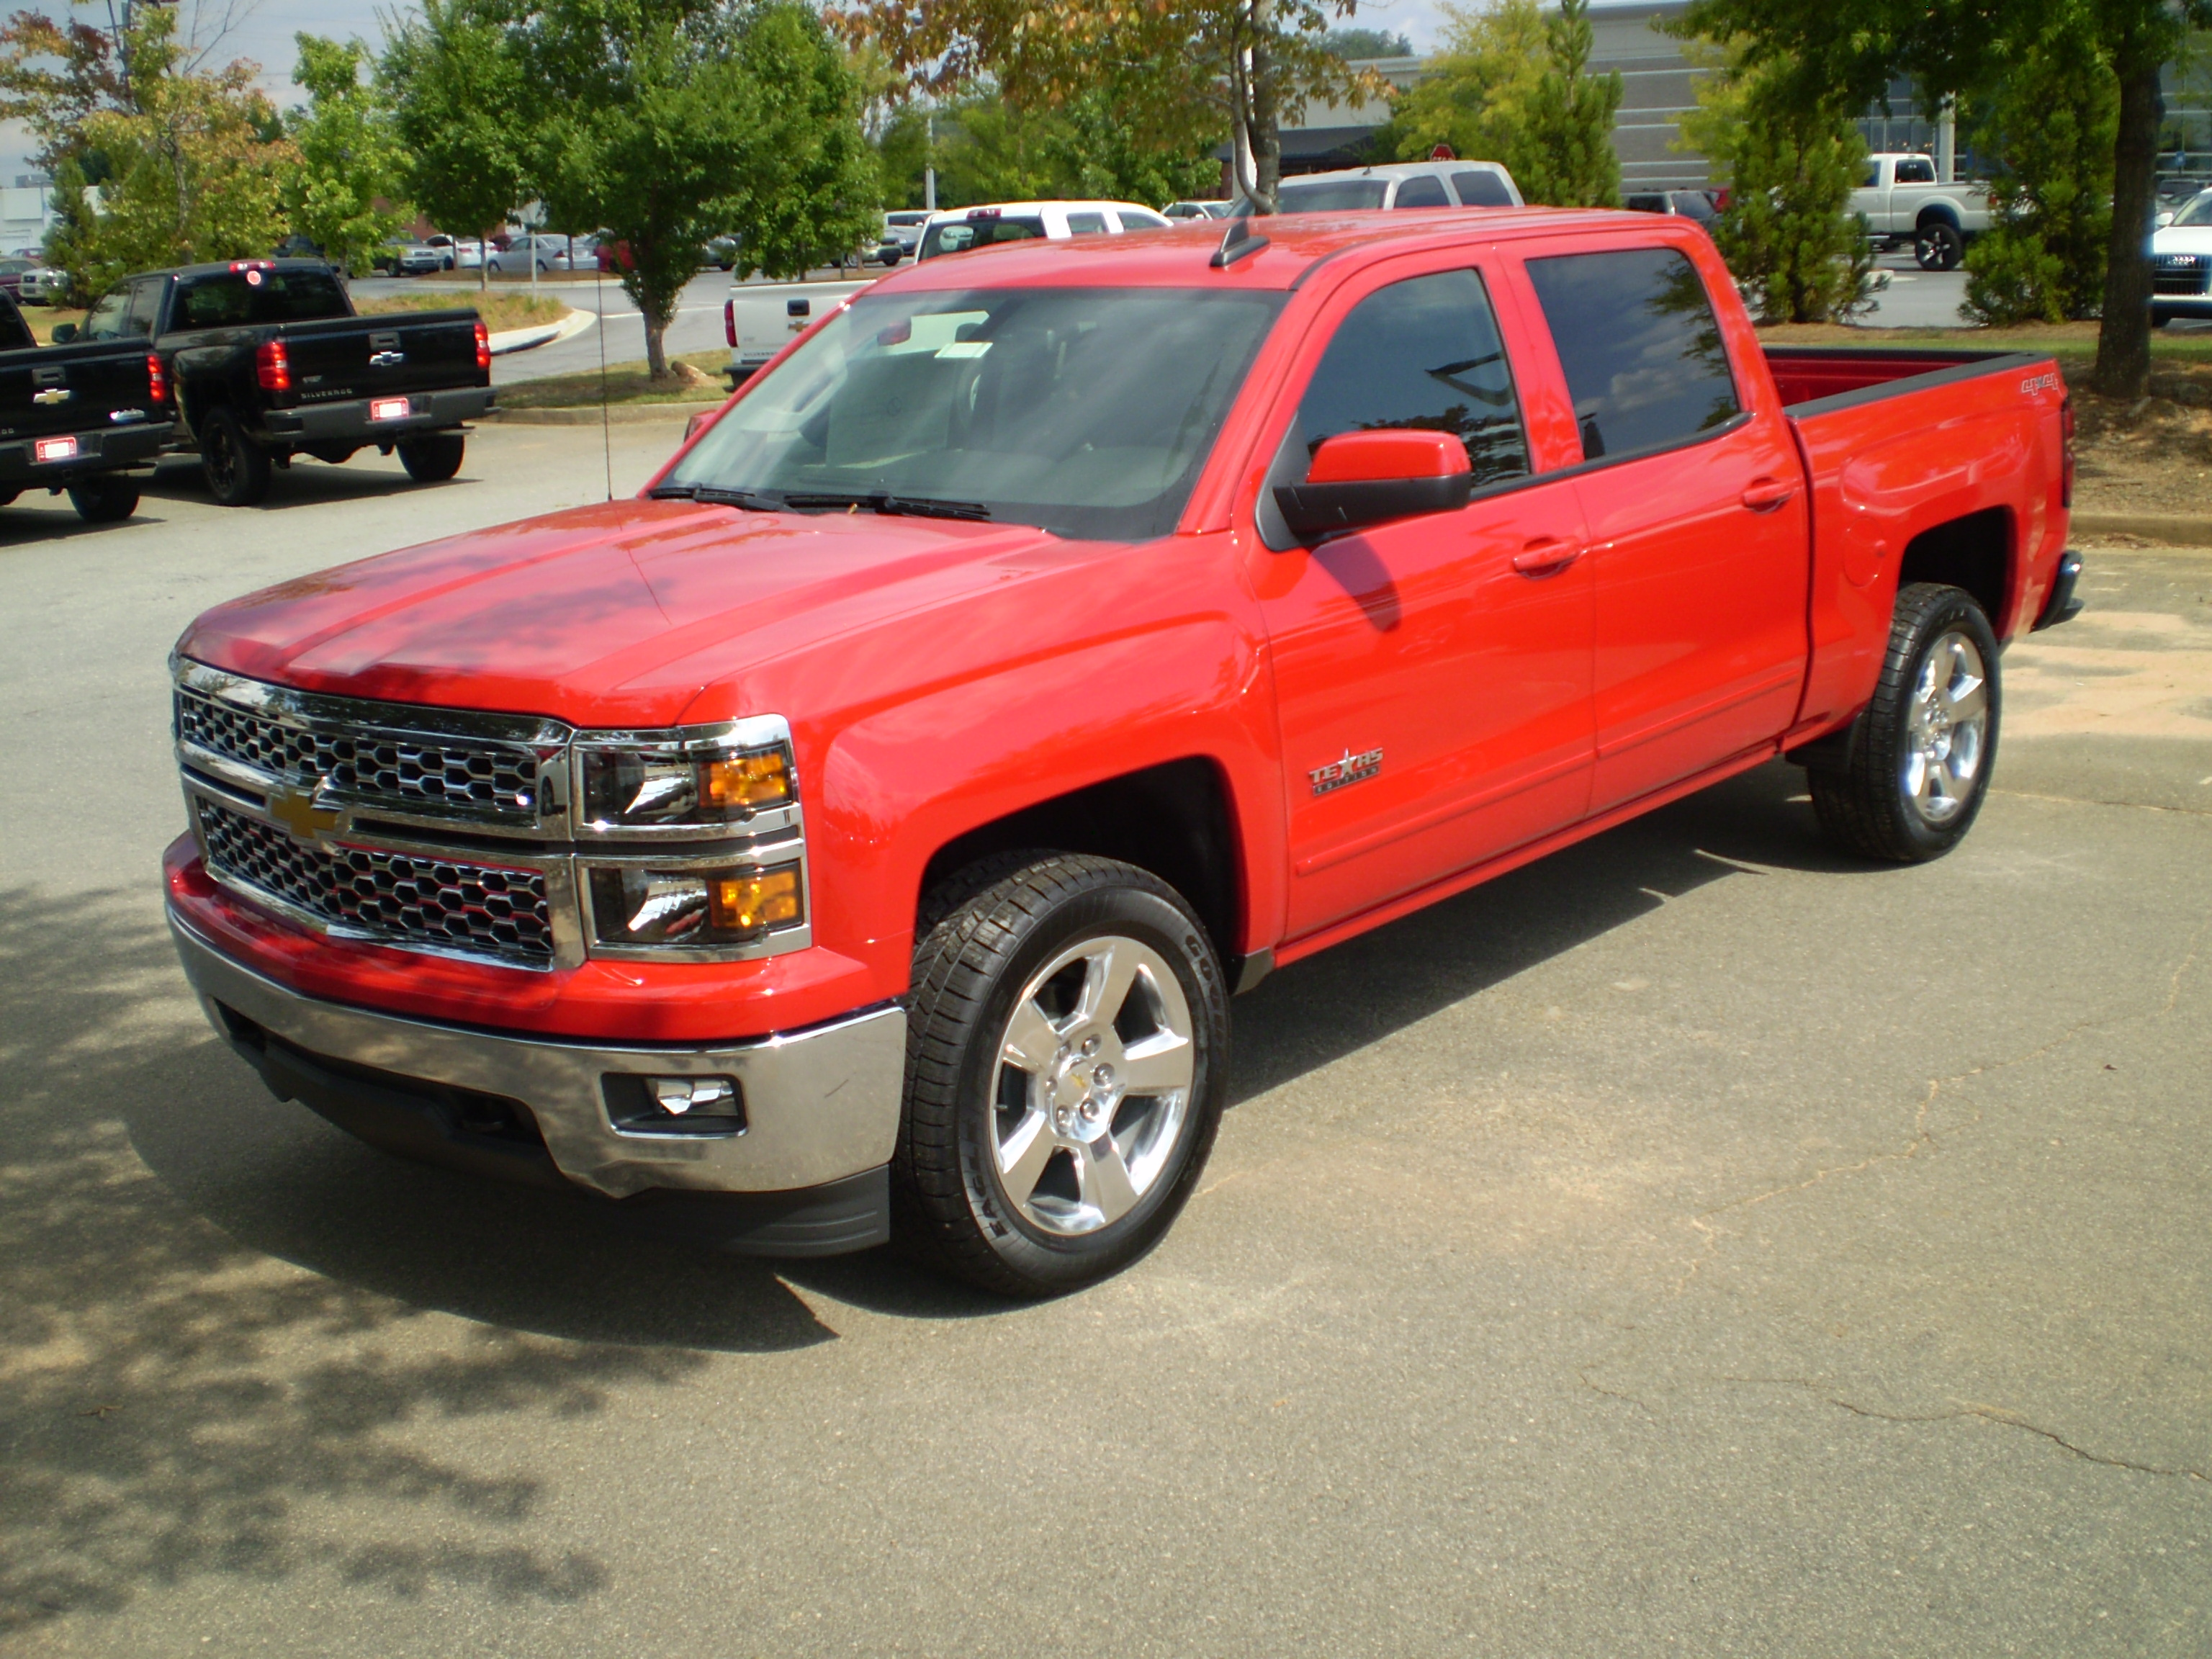 free to silverado for crew sale pertaining cab hd car wallpaper used pricing chevrolet